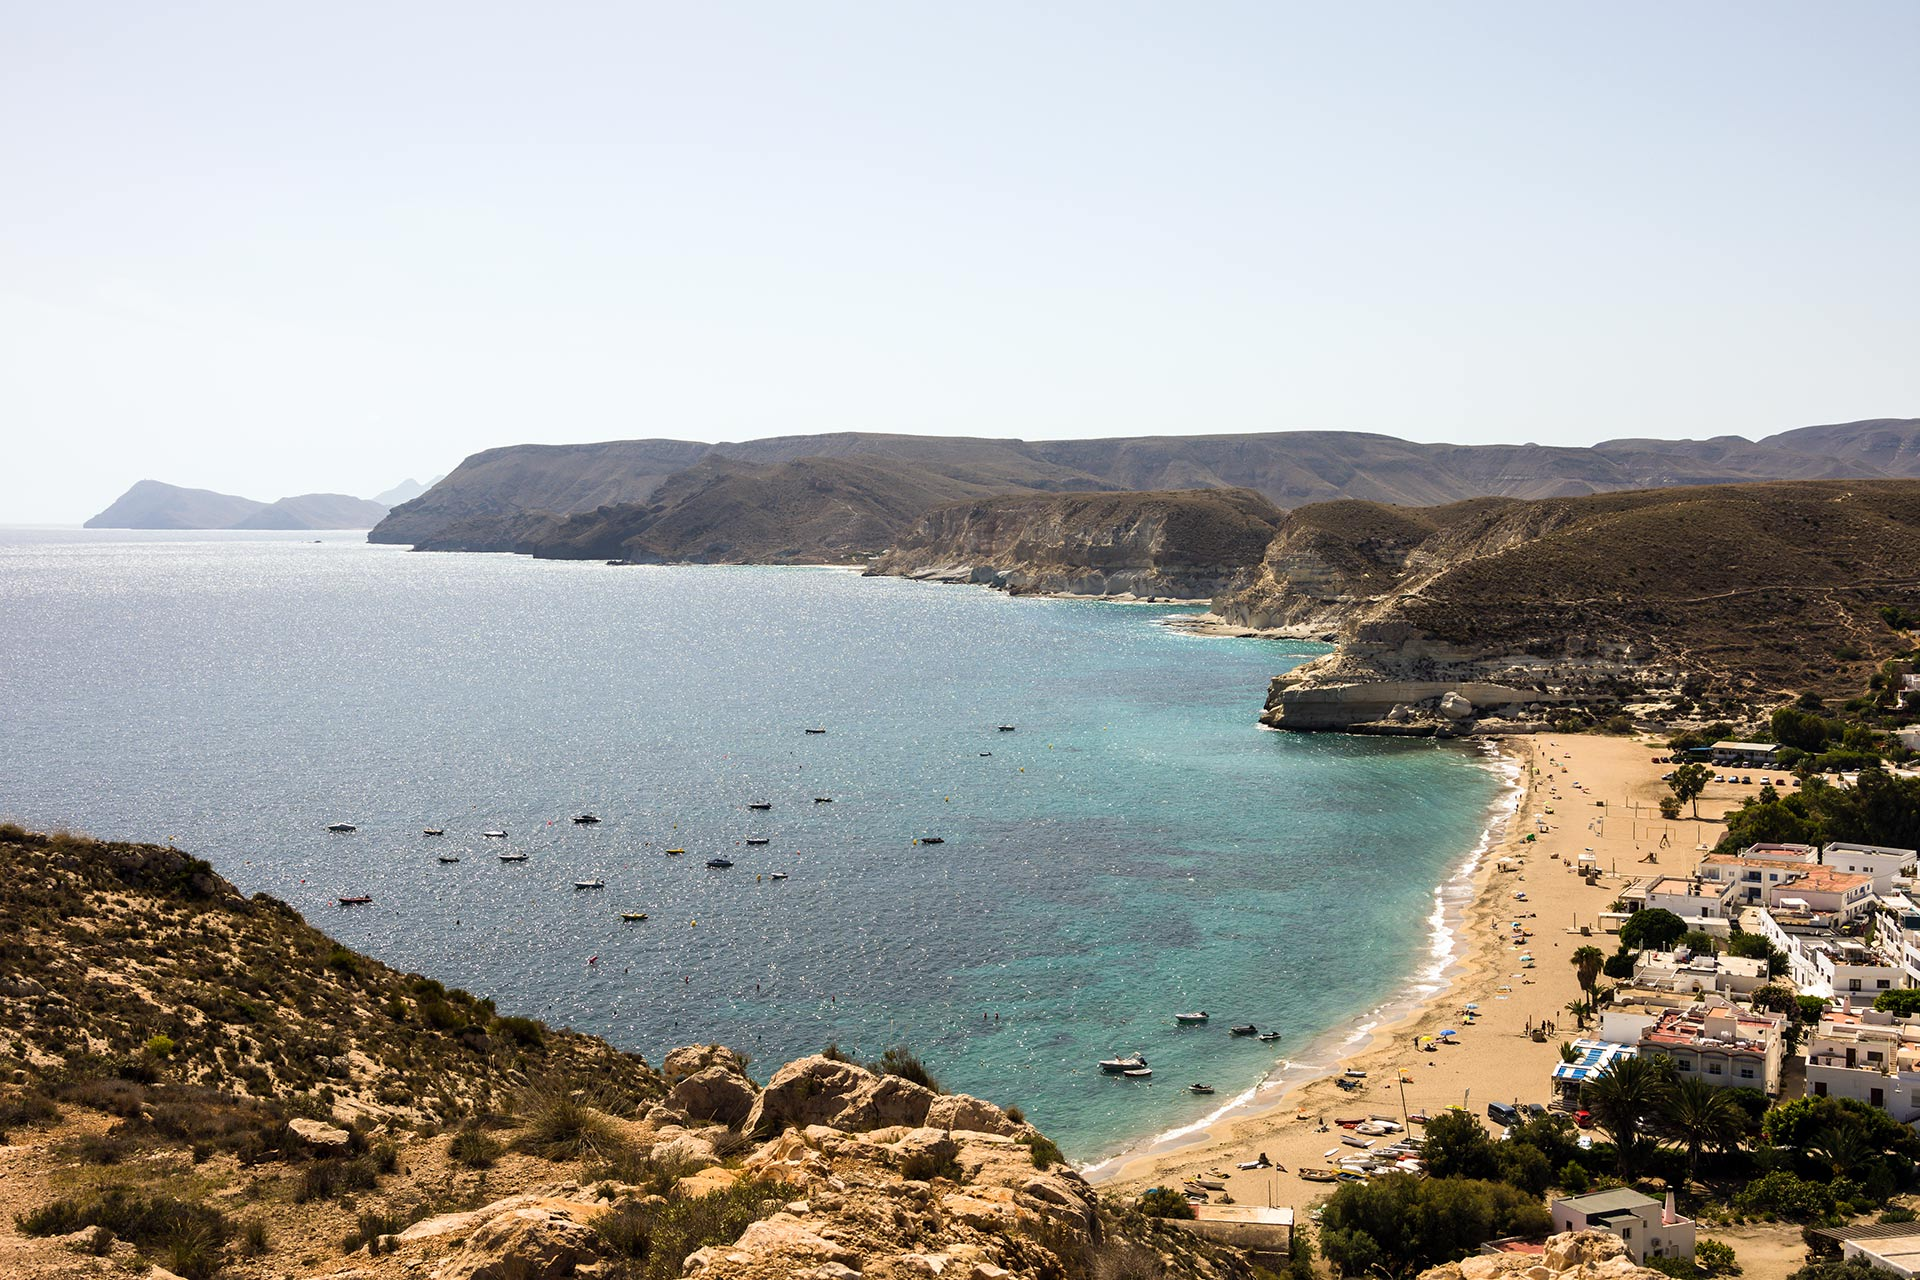 Cabo de Gata-Nijar Natural Park, Spain